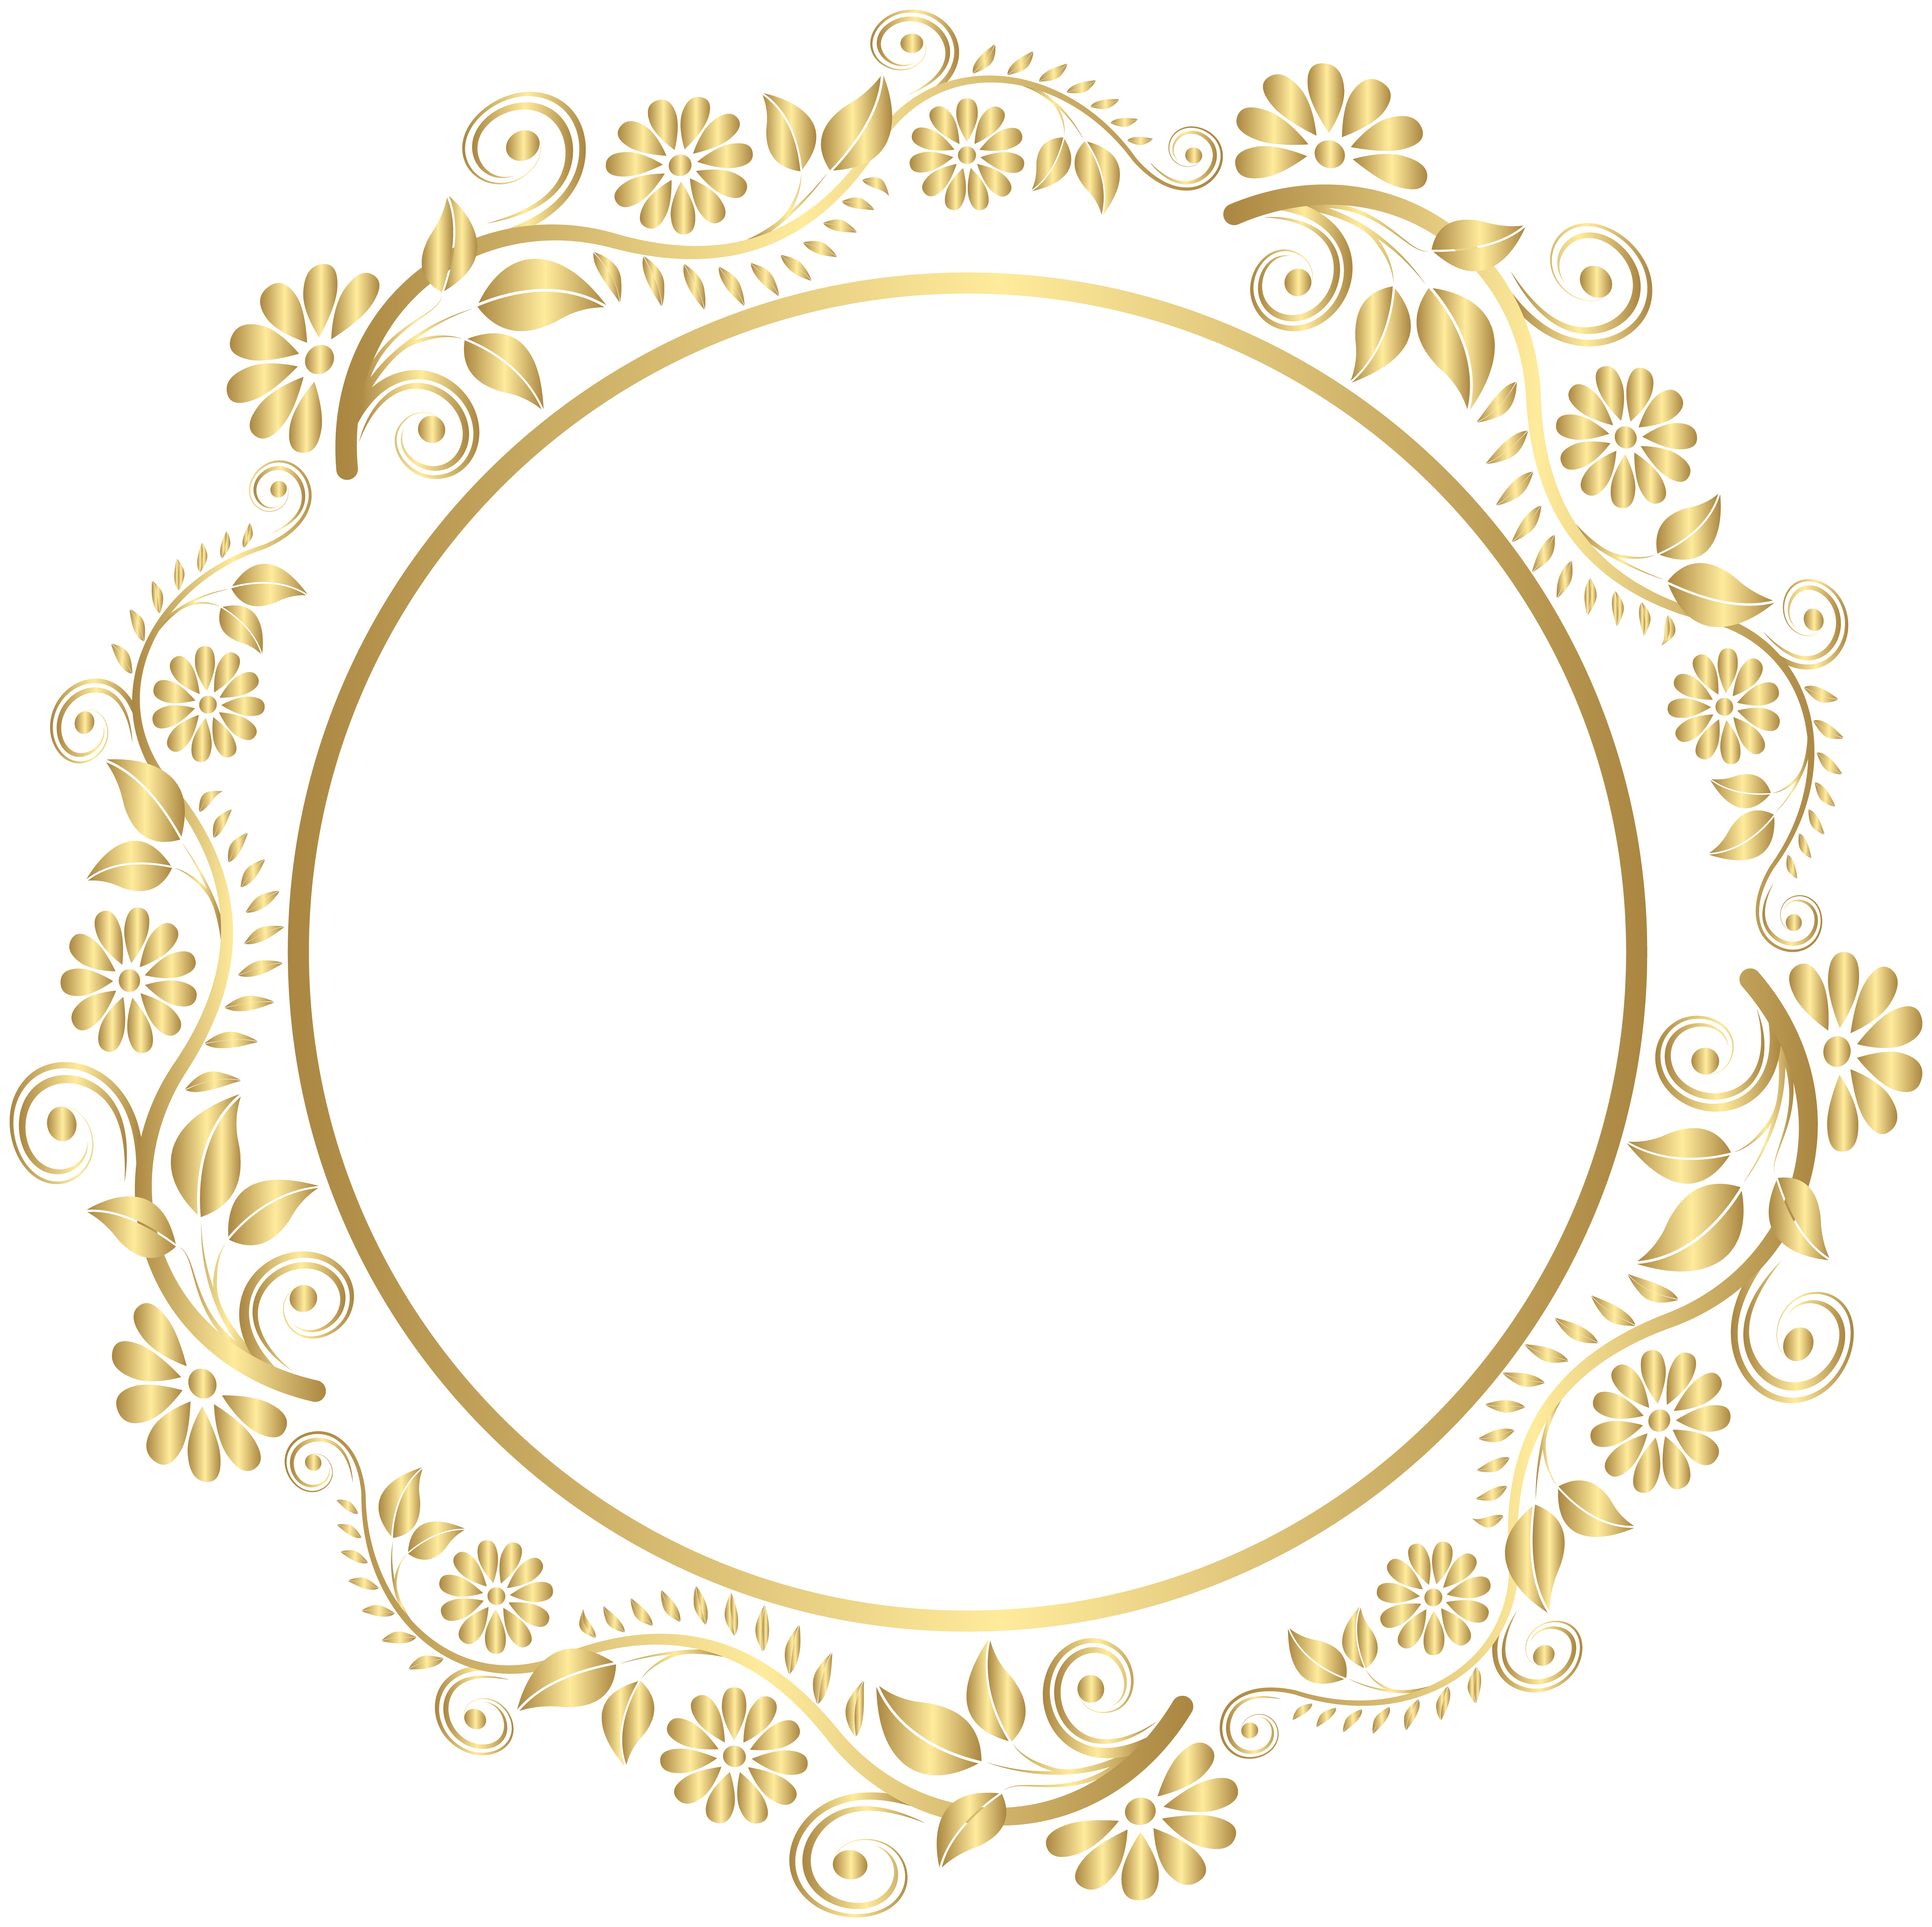 8019x8000 Round Gold Border Frame Deco Png Clip Artu200b Gallery Yopriceville